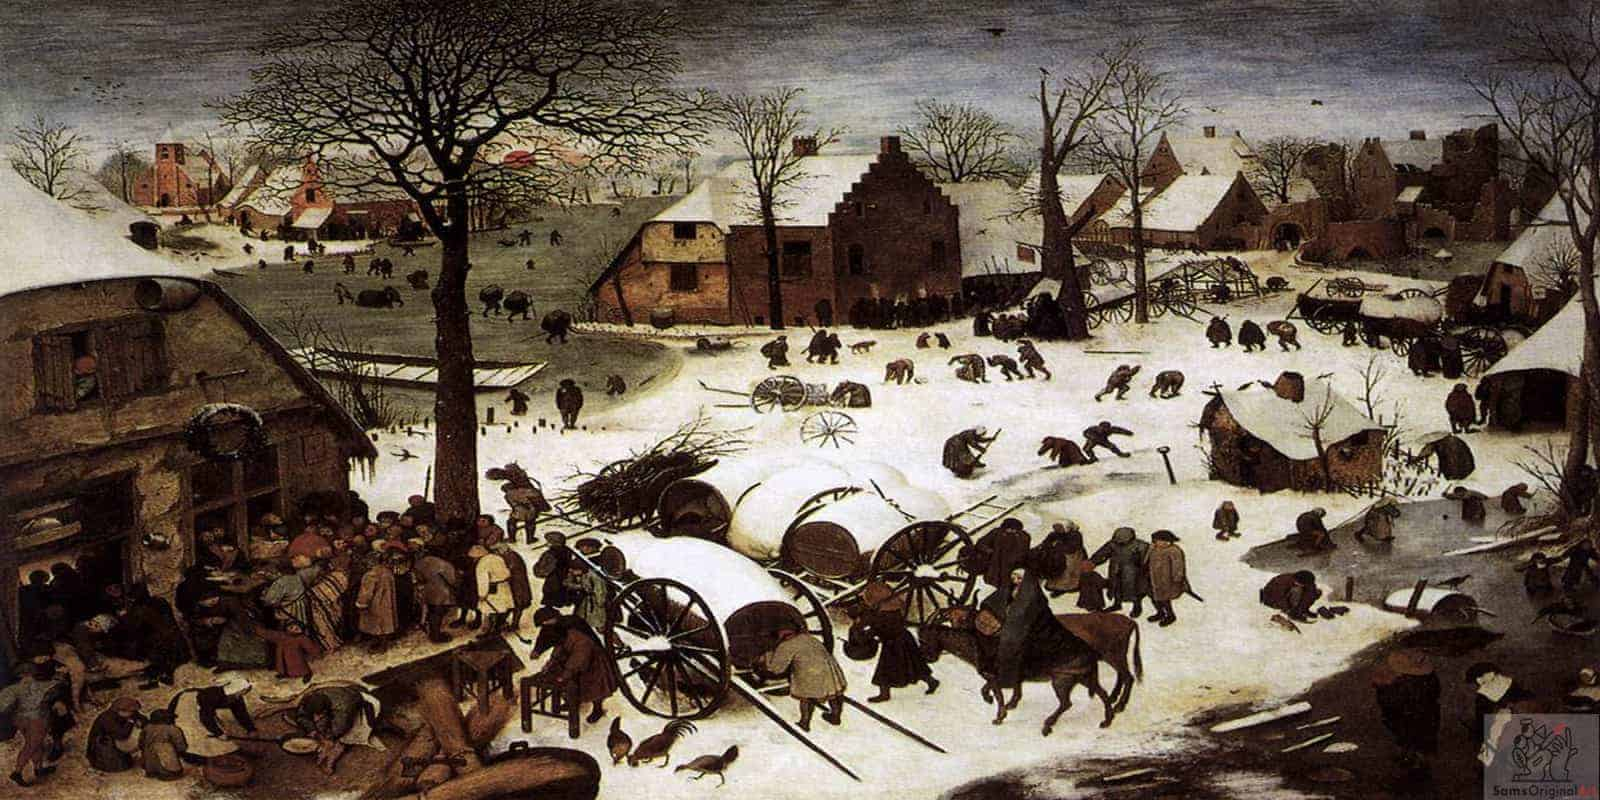 Pieter_Bruegel_the_Elder The_Census_at_Bethlehem